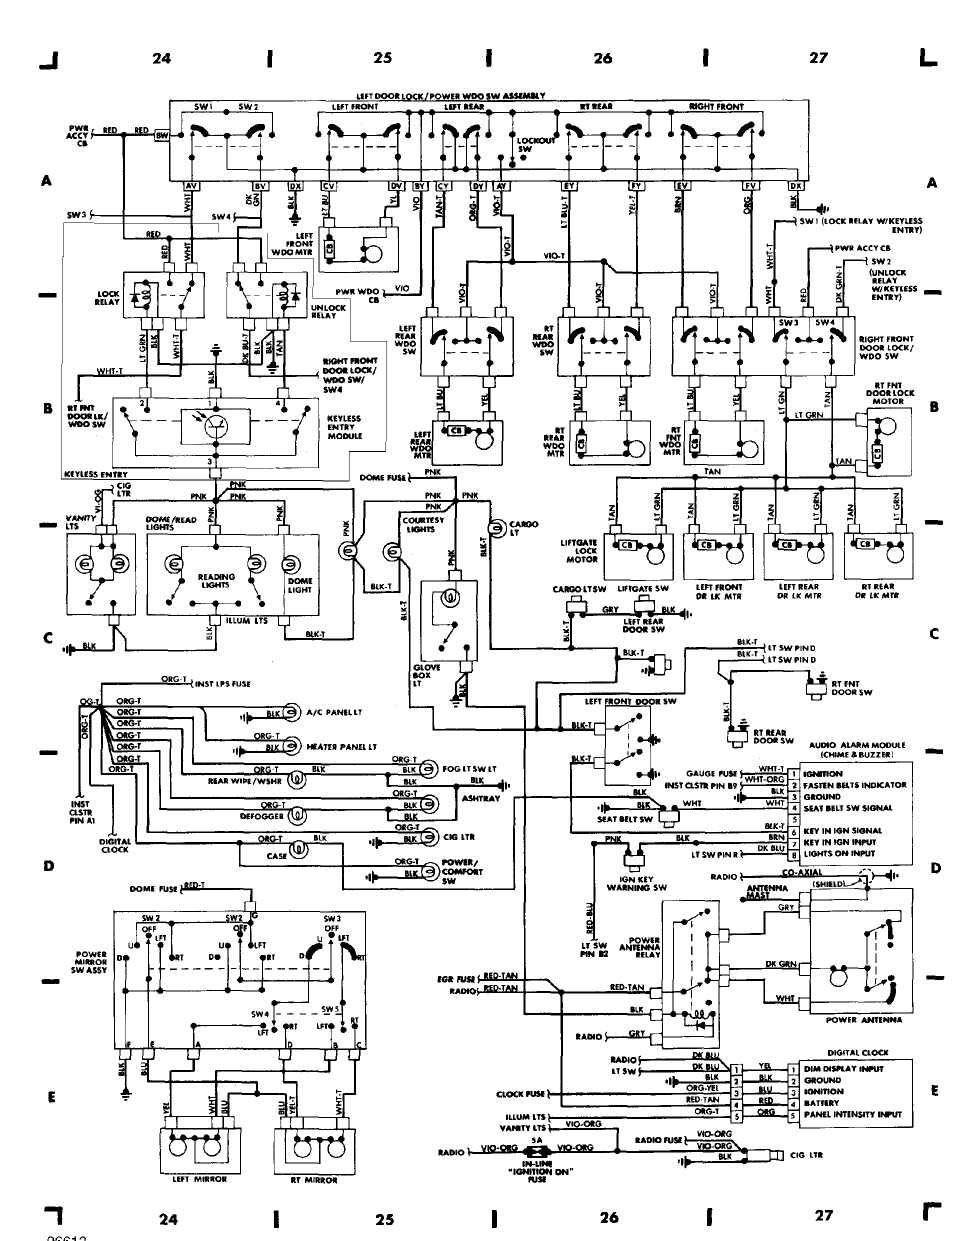 wiring_diagrams_html_61f5e0ad wiring diagrams 1984 1991 jeep cherokee (xj) jeep 2001 jeep wrangler wiring diagram at n-0.co